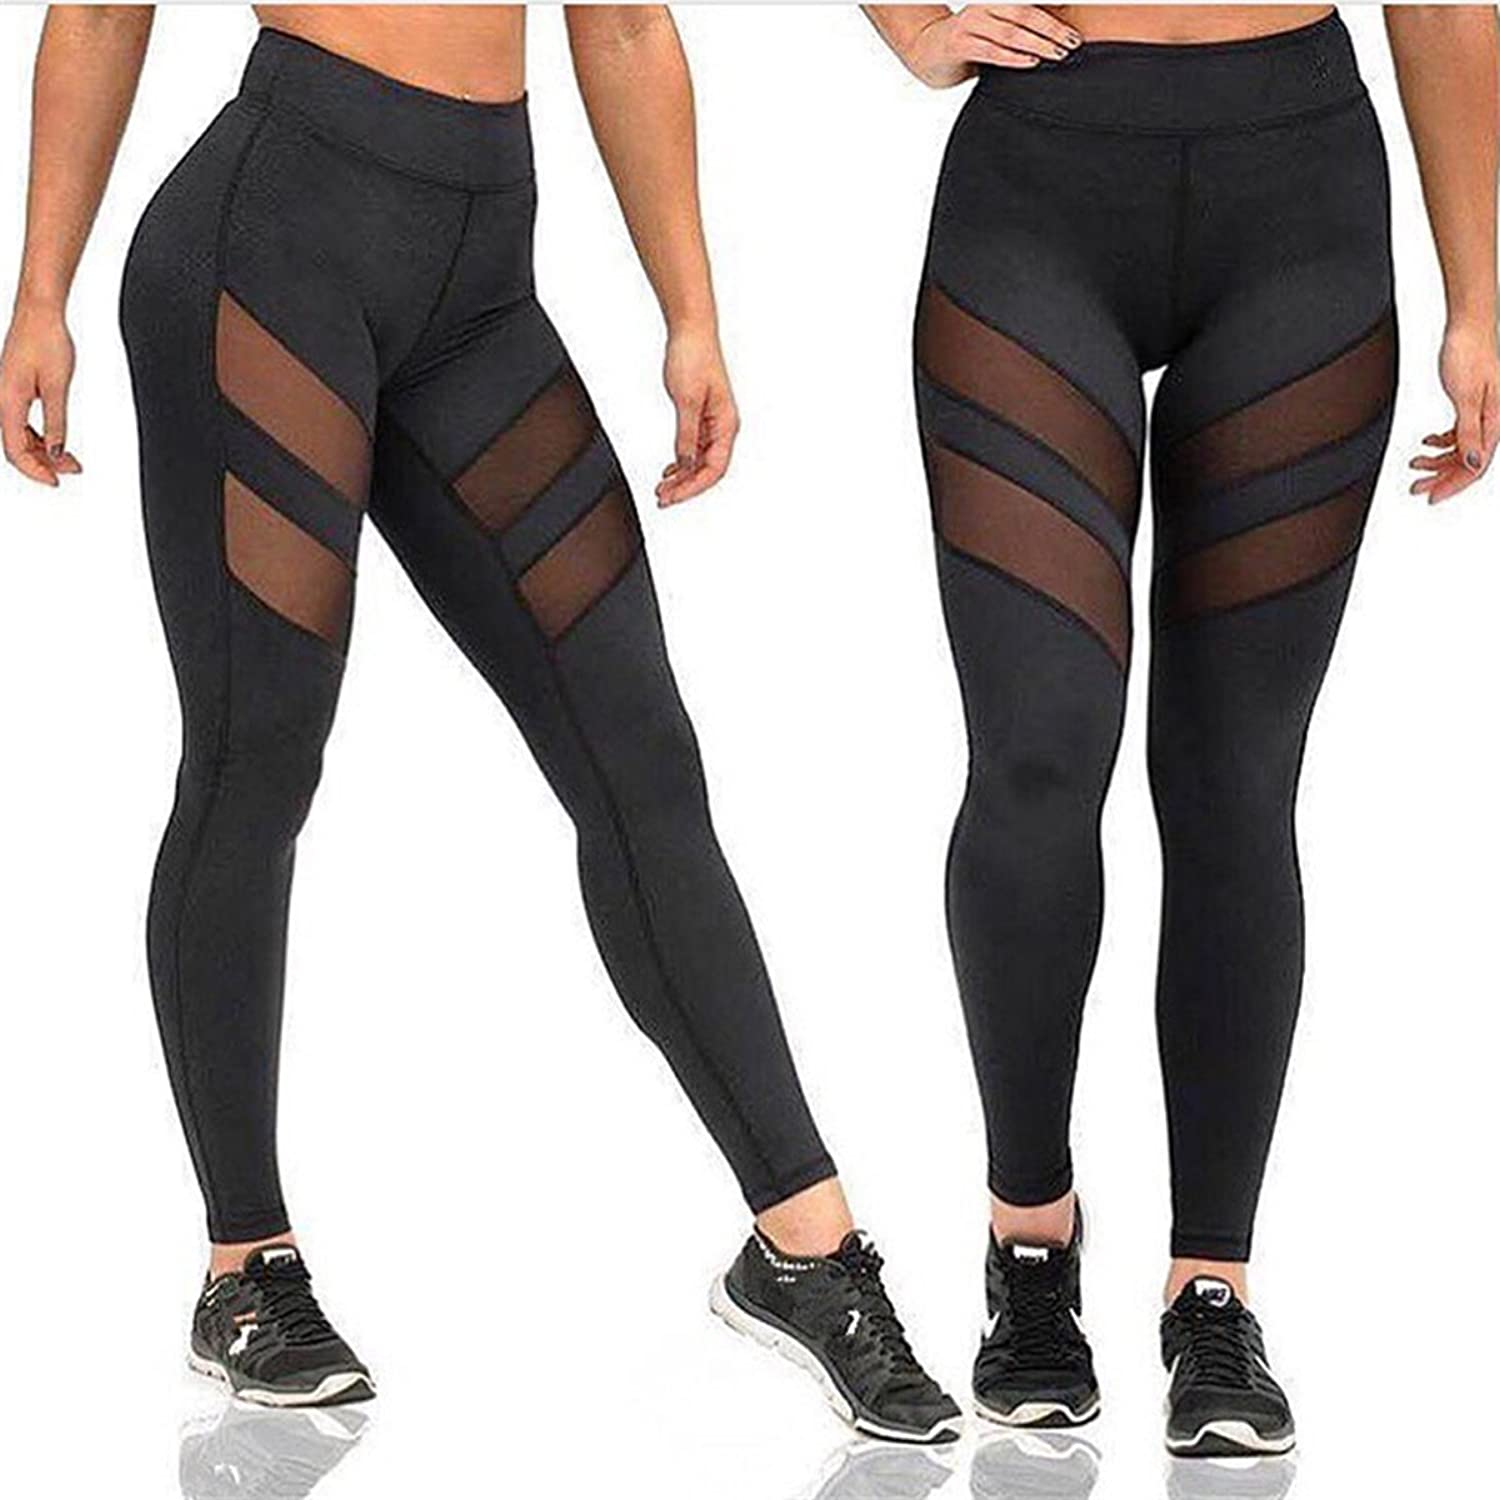 Amazon Best Sellers: Best Women's Sports Compression Pants & Tights